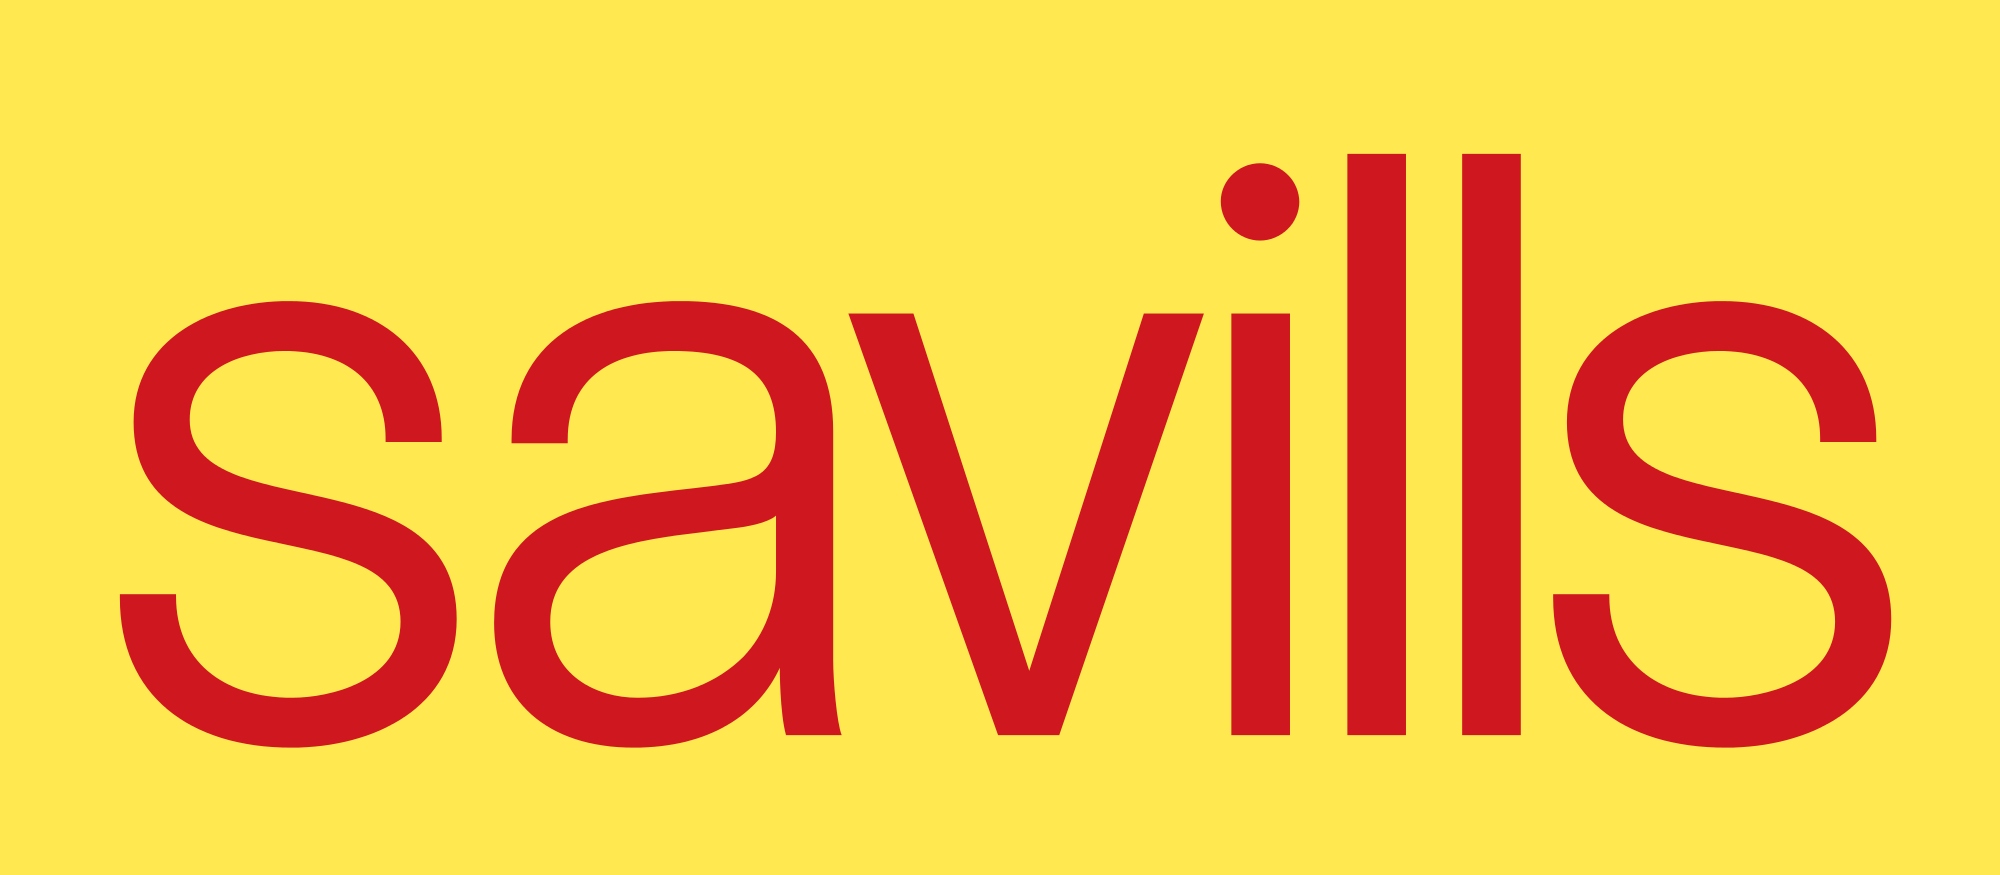 savills logo property estate agent london